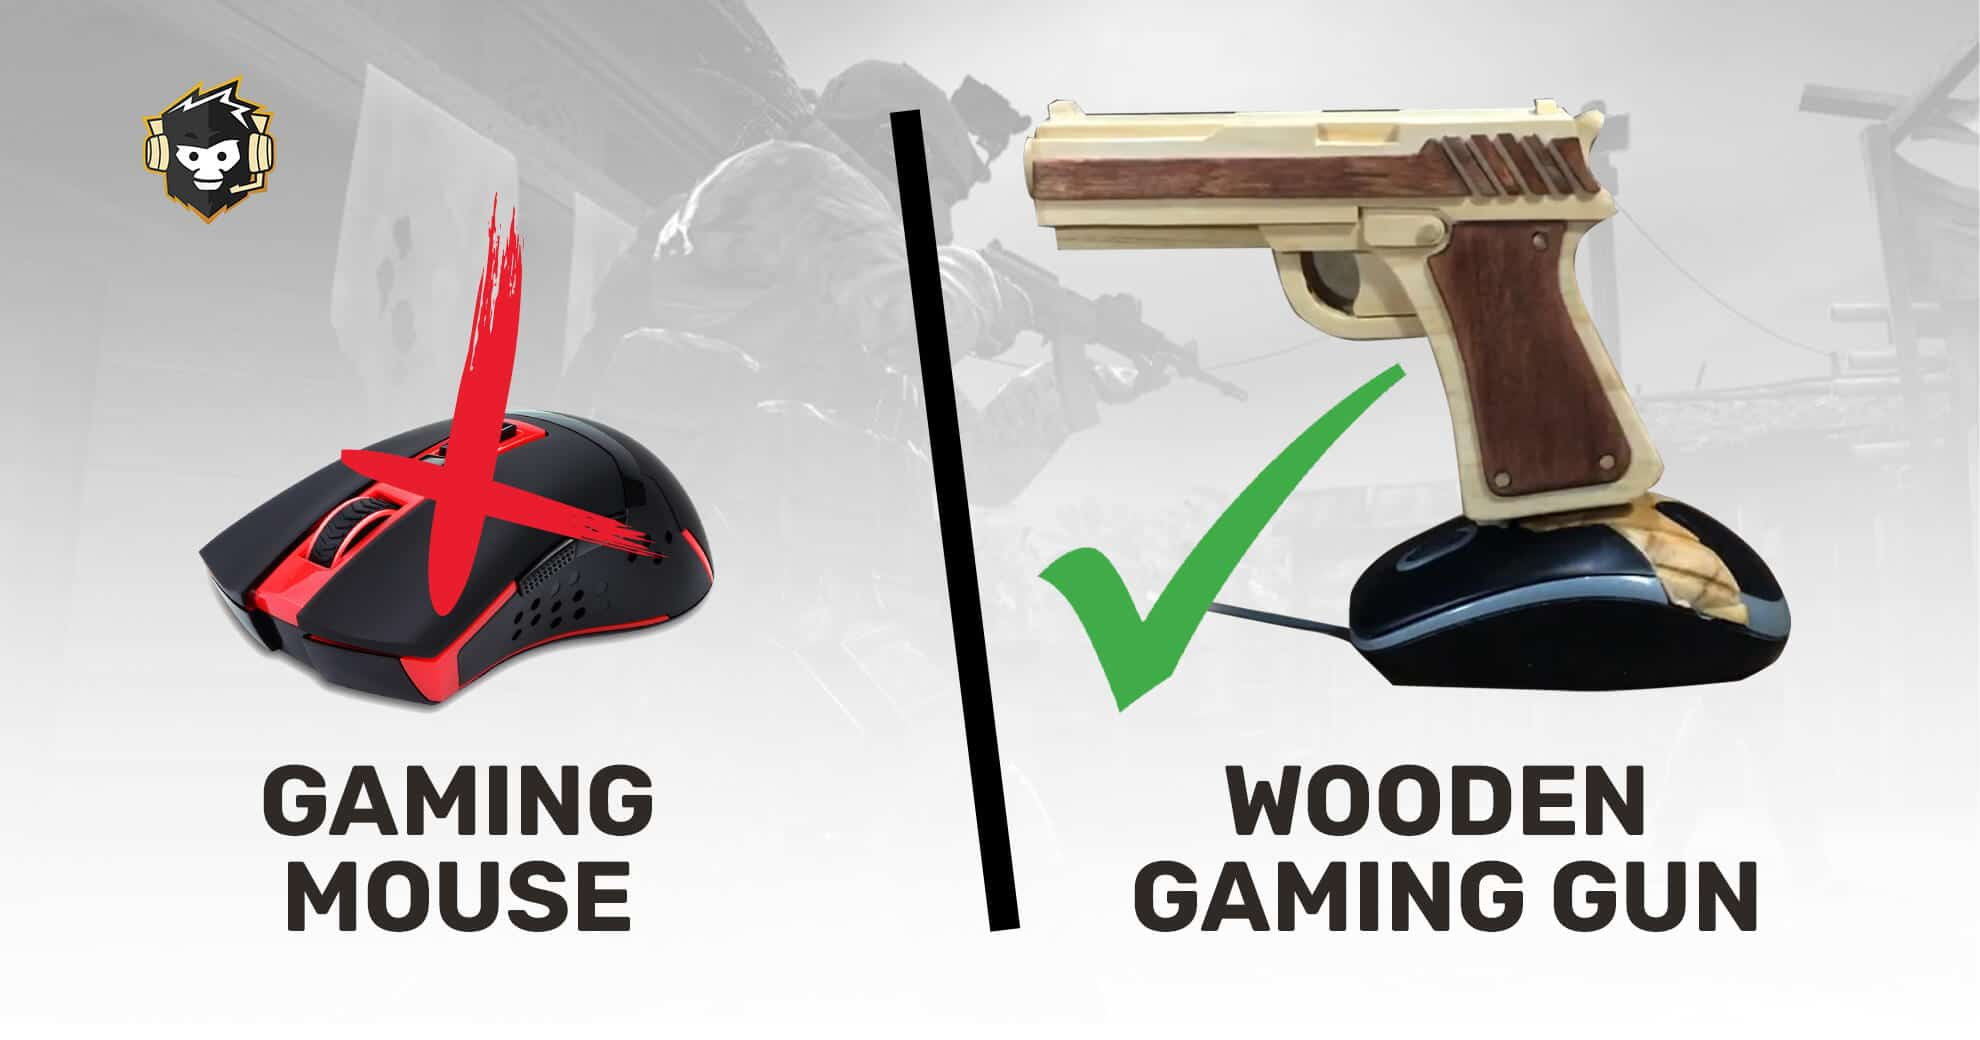 User Replaces Mouse With Custom Wooden Gaming Gun To Play CSGO